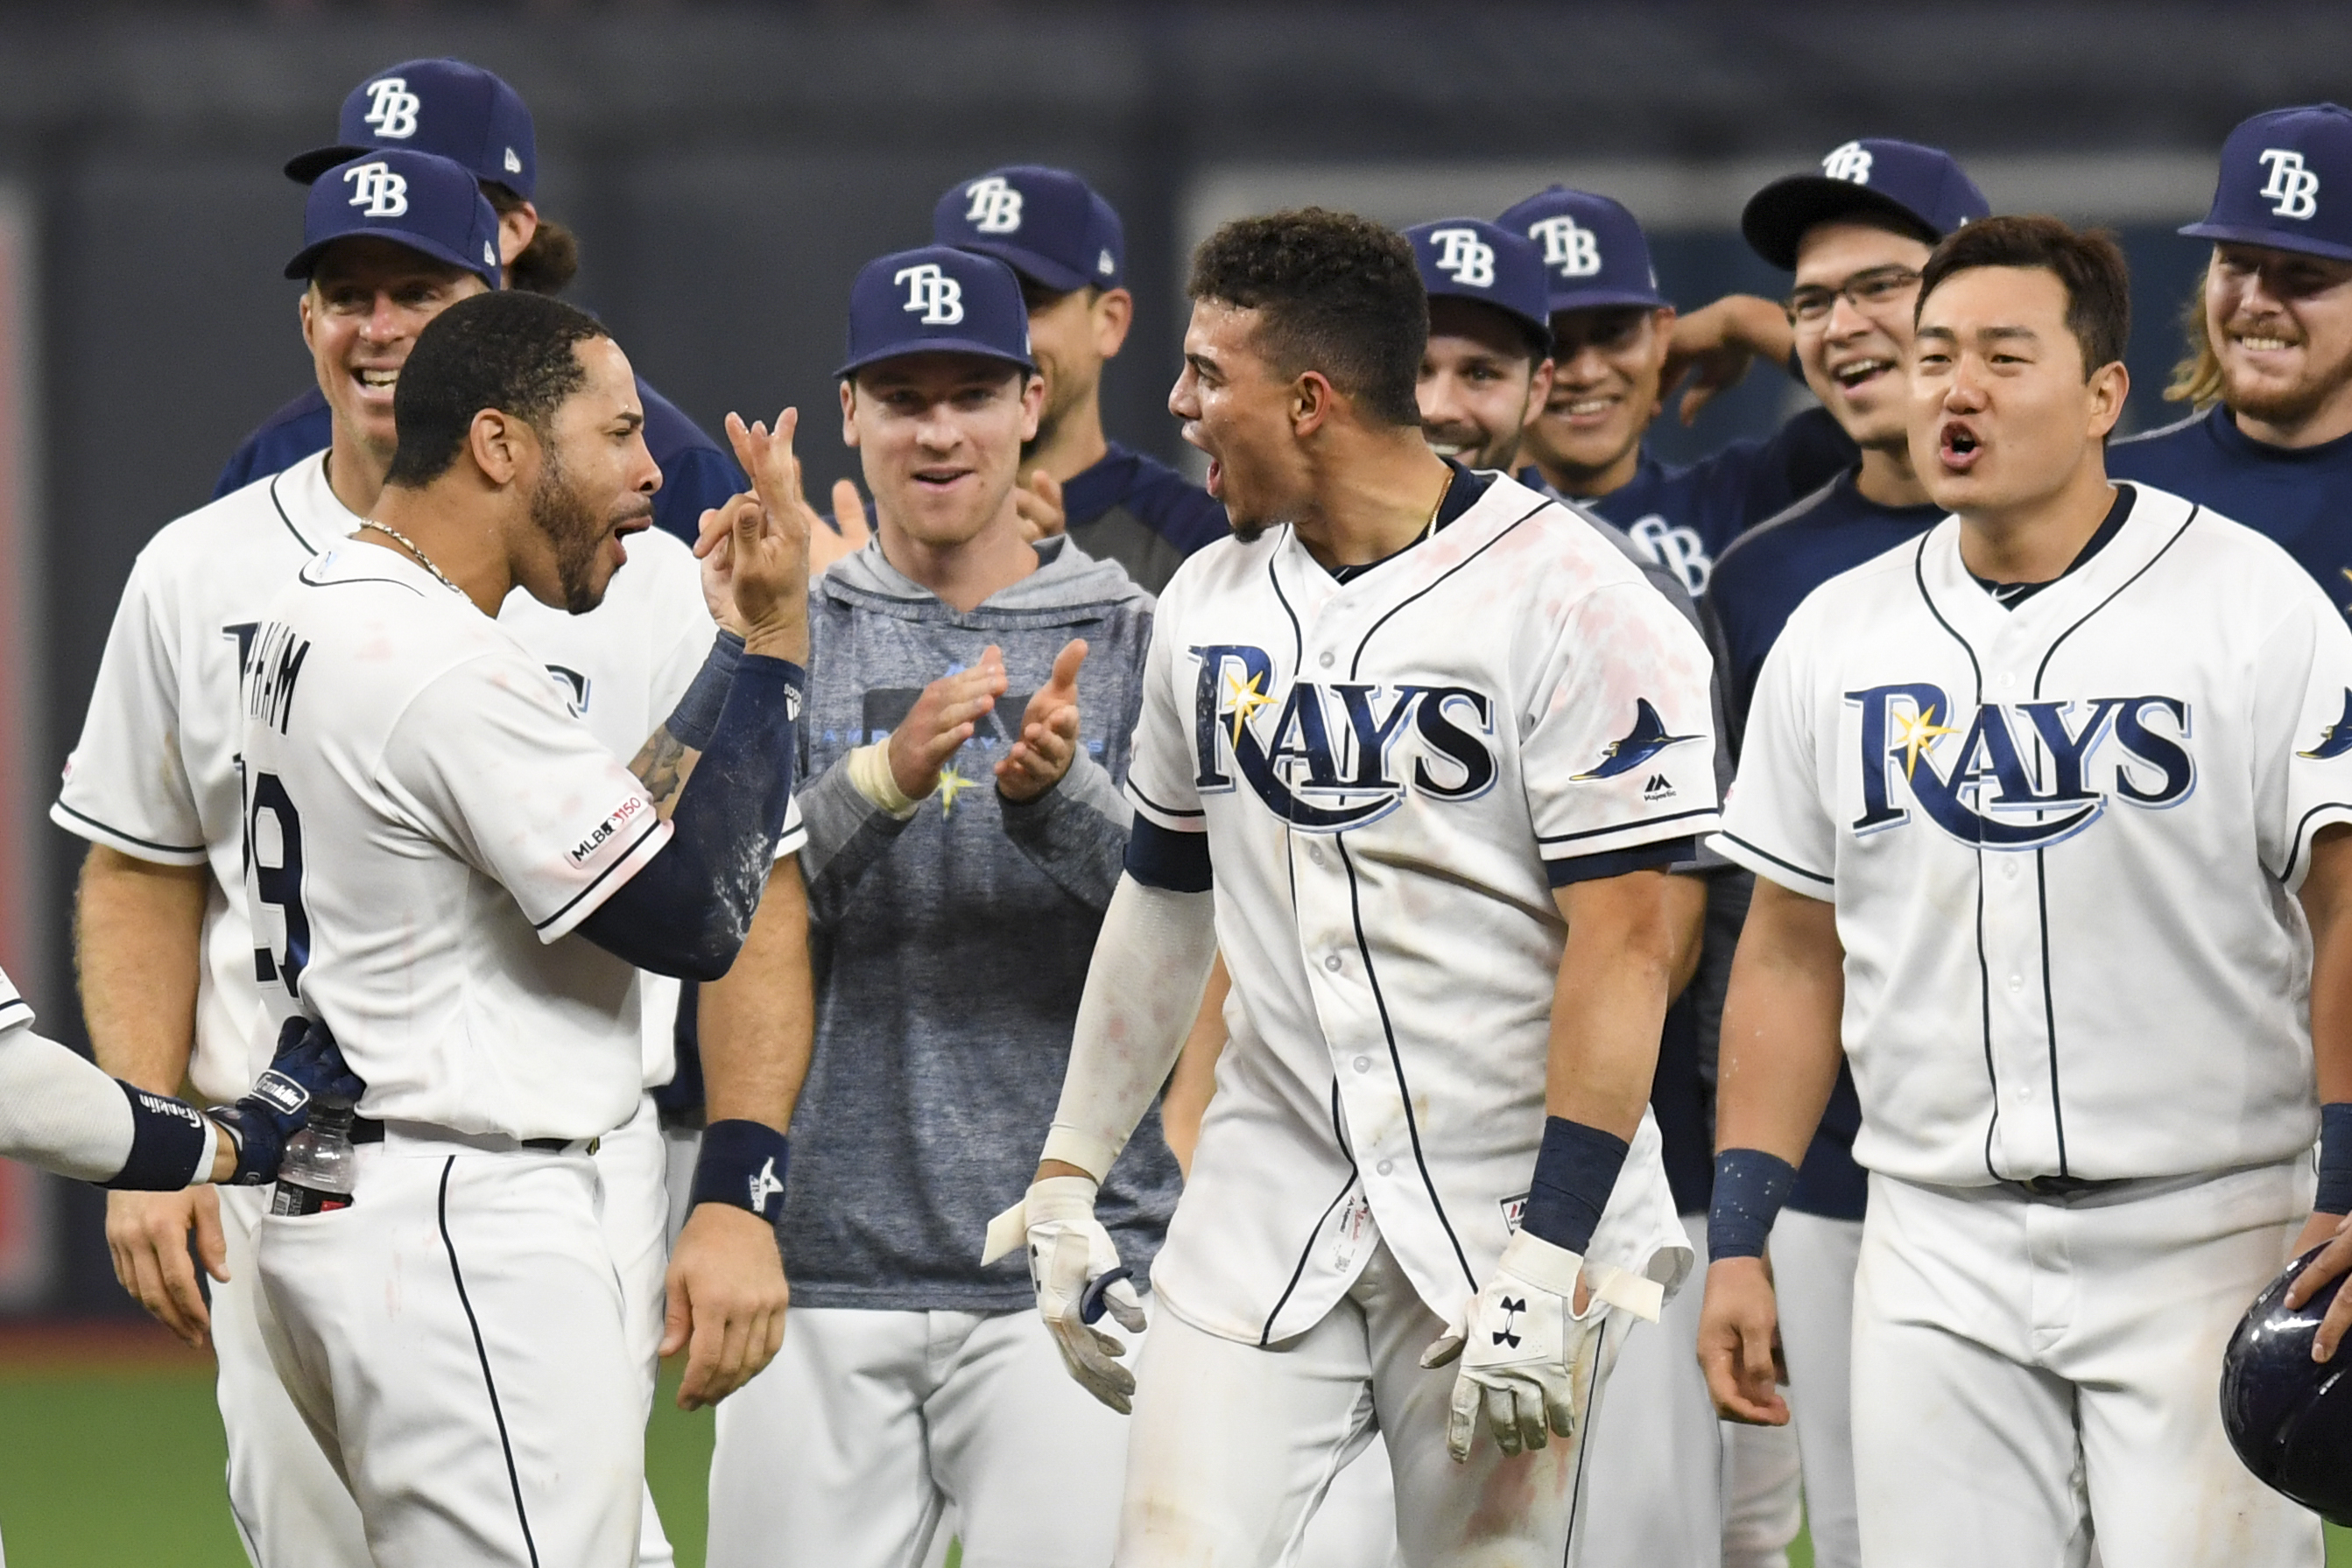 finest selection 52cf0 693b7 Rays sell out $5 tickets for June 14 game; June 10-13 still ...